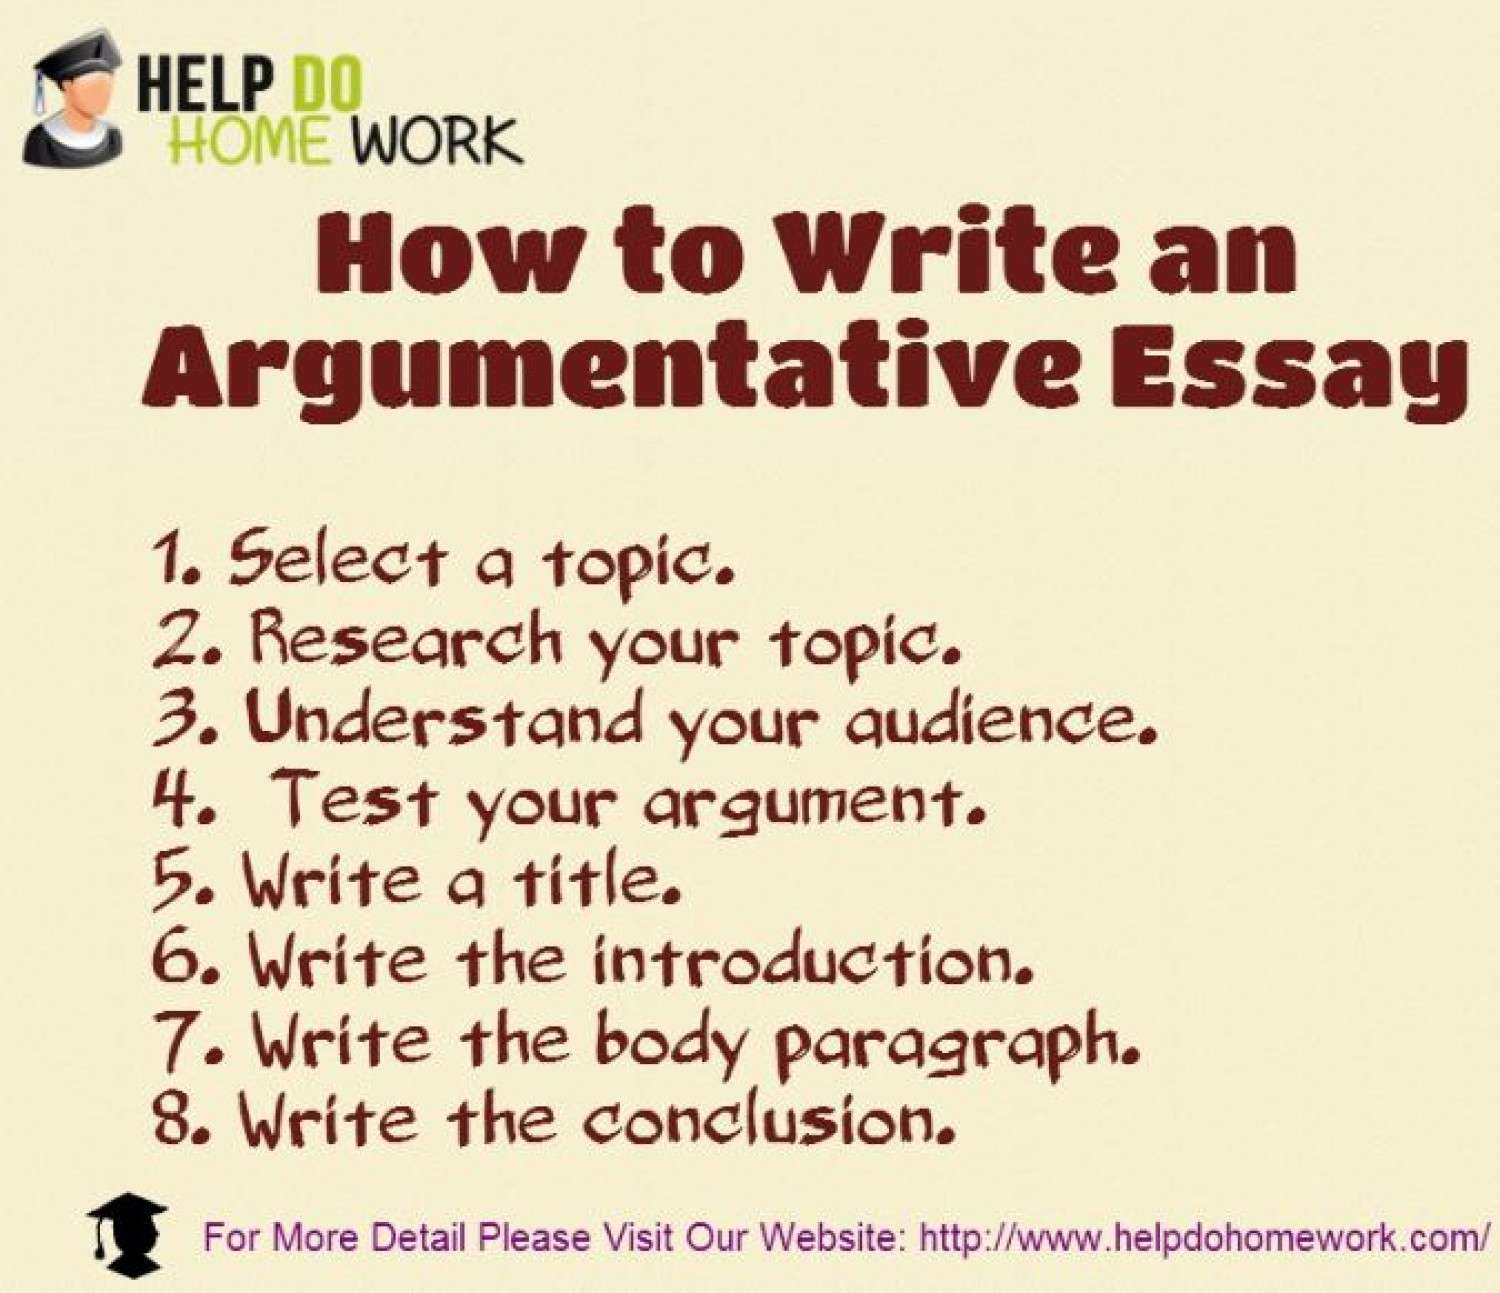 what are the steps to write an argumentative essay How to write an argumentative essay - what to include, structure, referencing and tone complete free guide for students on writing argumentative essays.